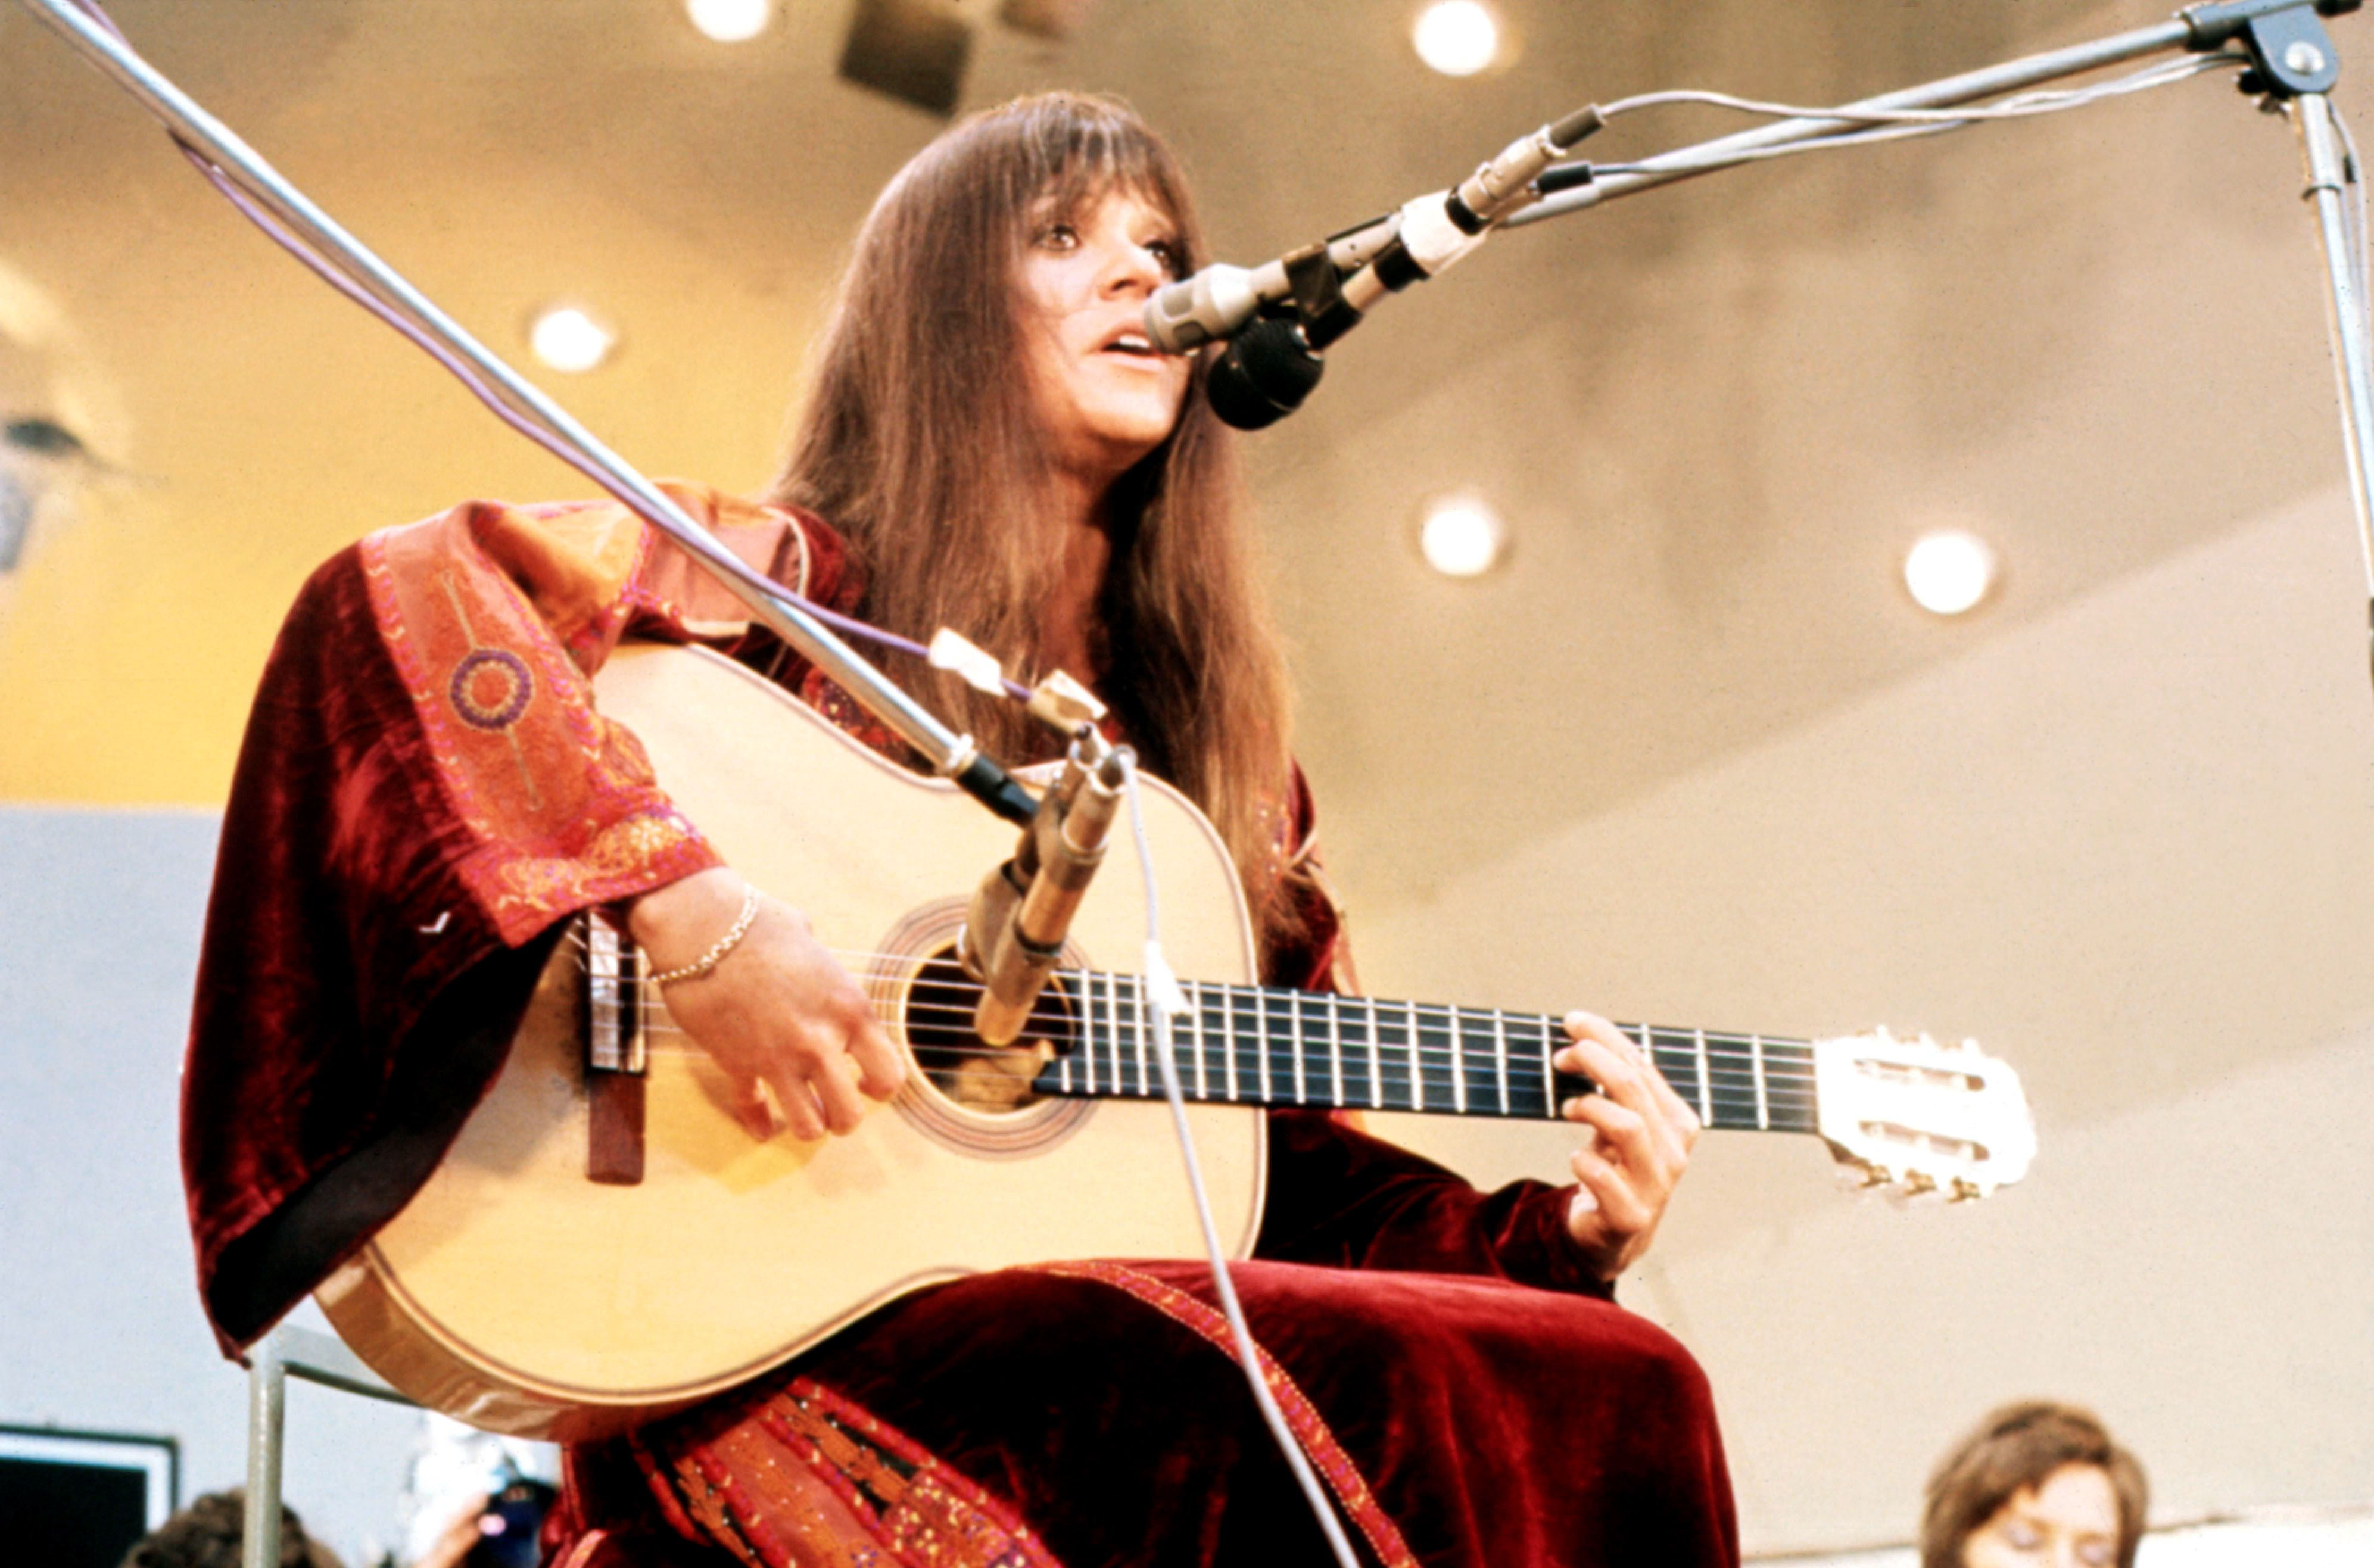 Melanie playing acoustic guitar and singing